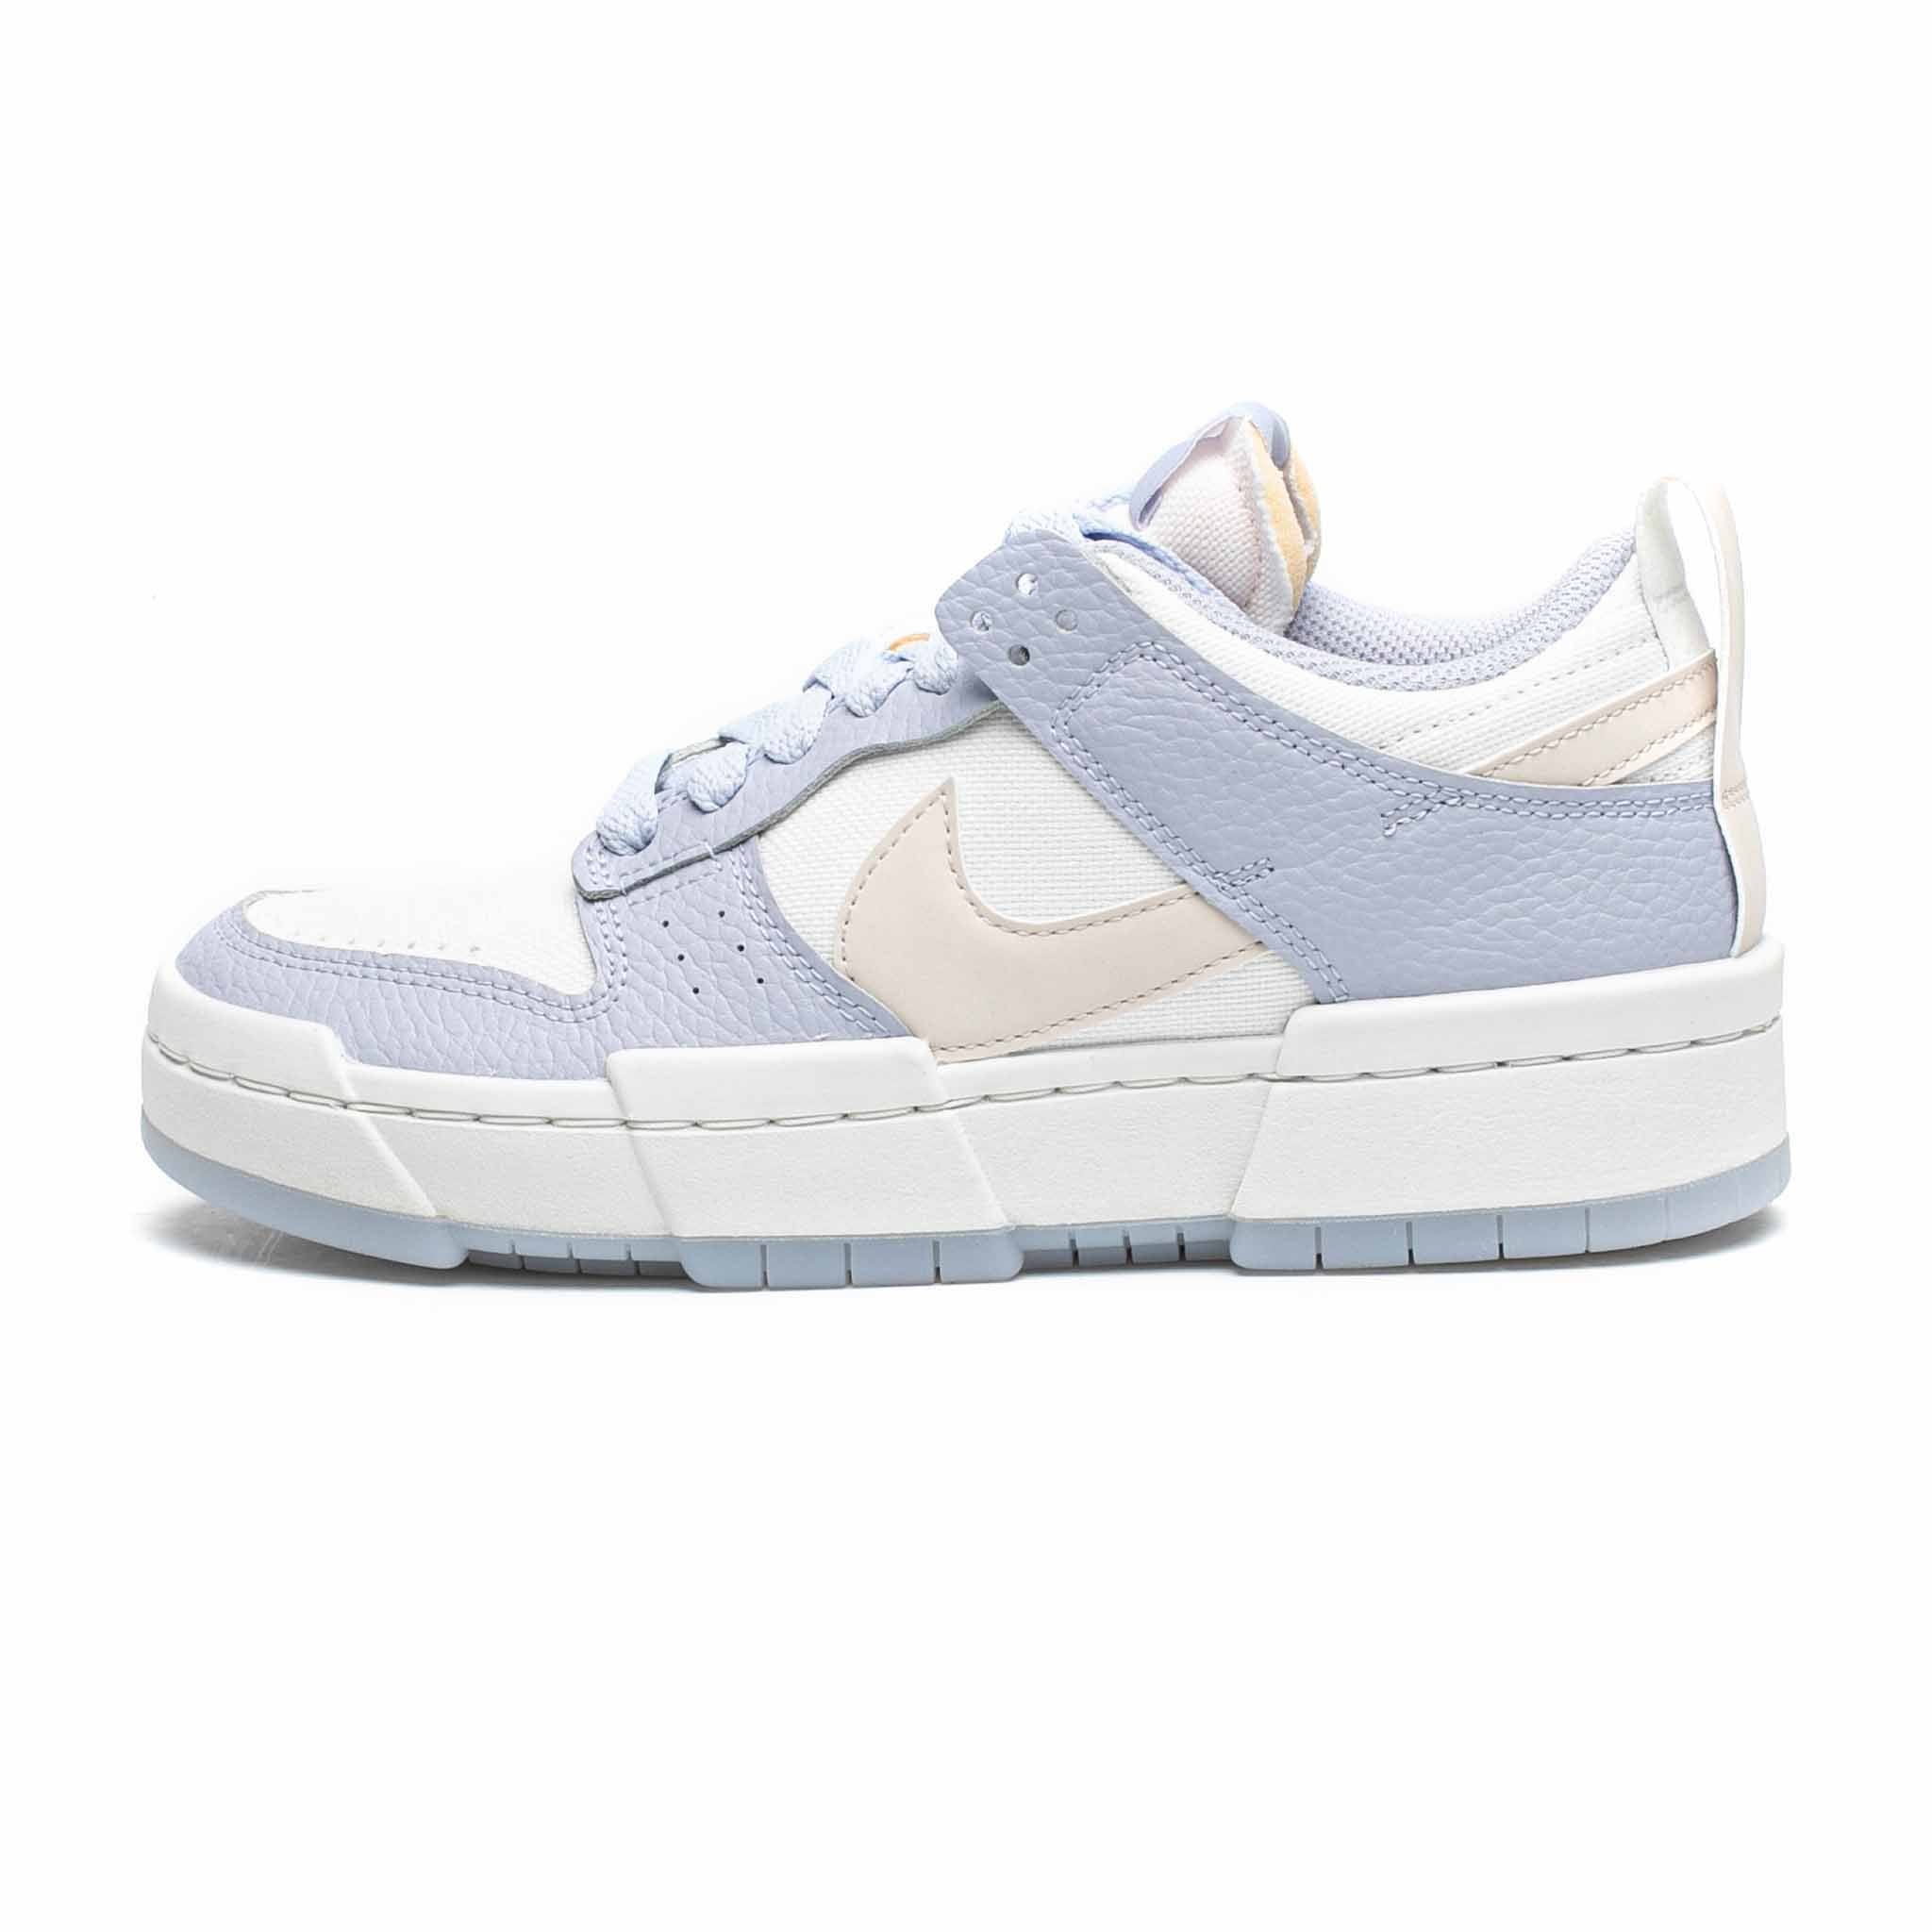 Nike Dunk Low Disrupt 'Summit White/Ghost'